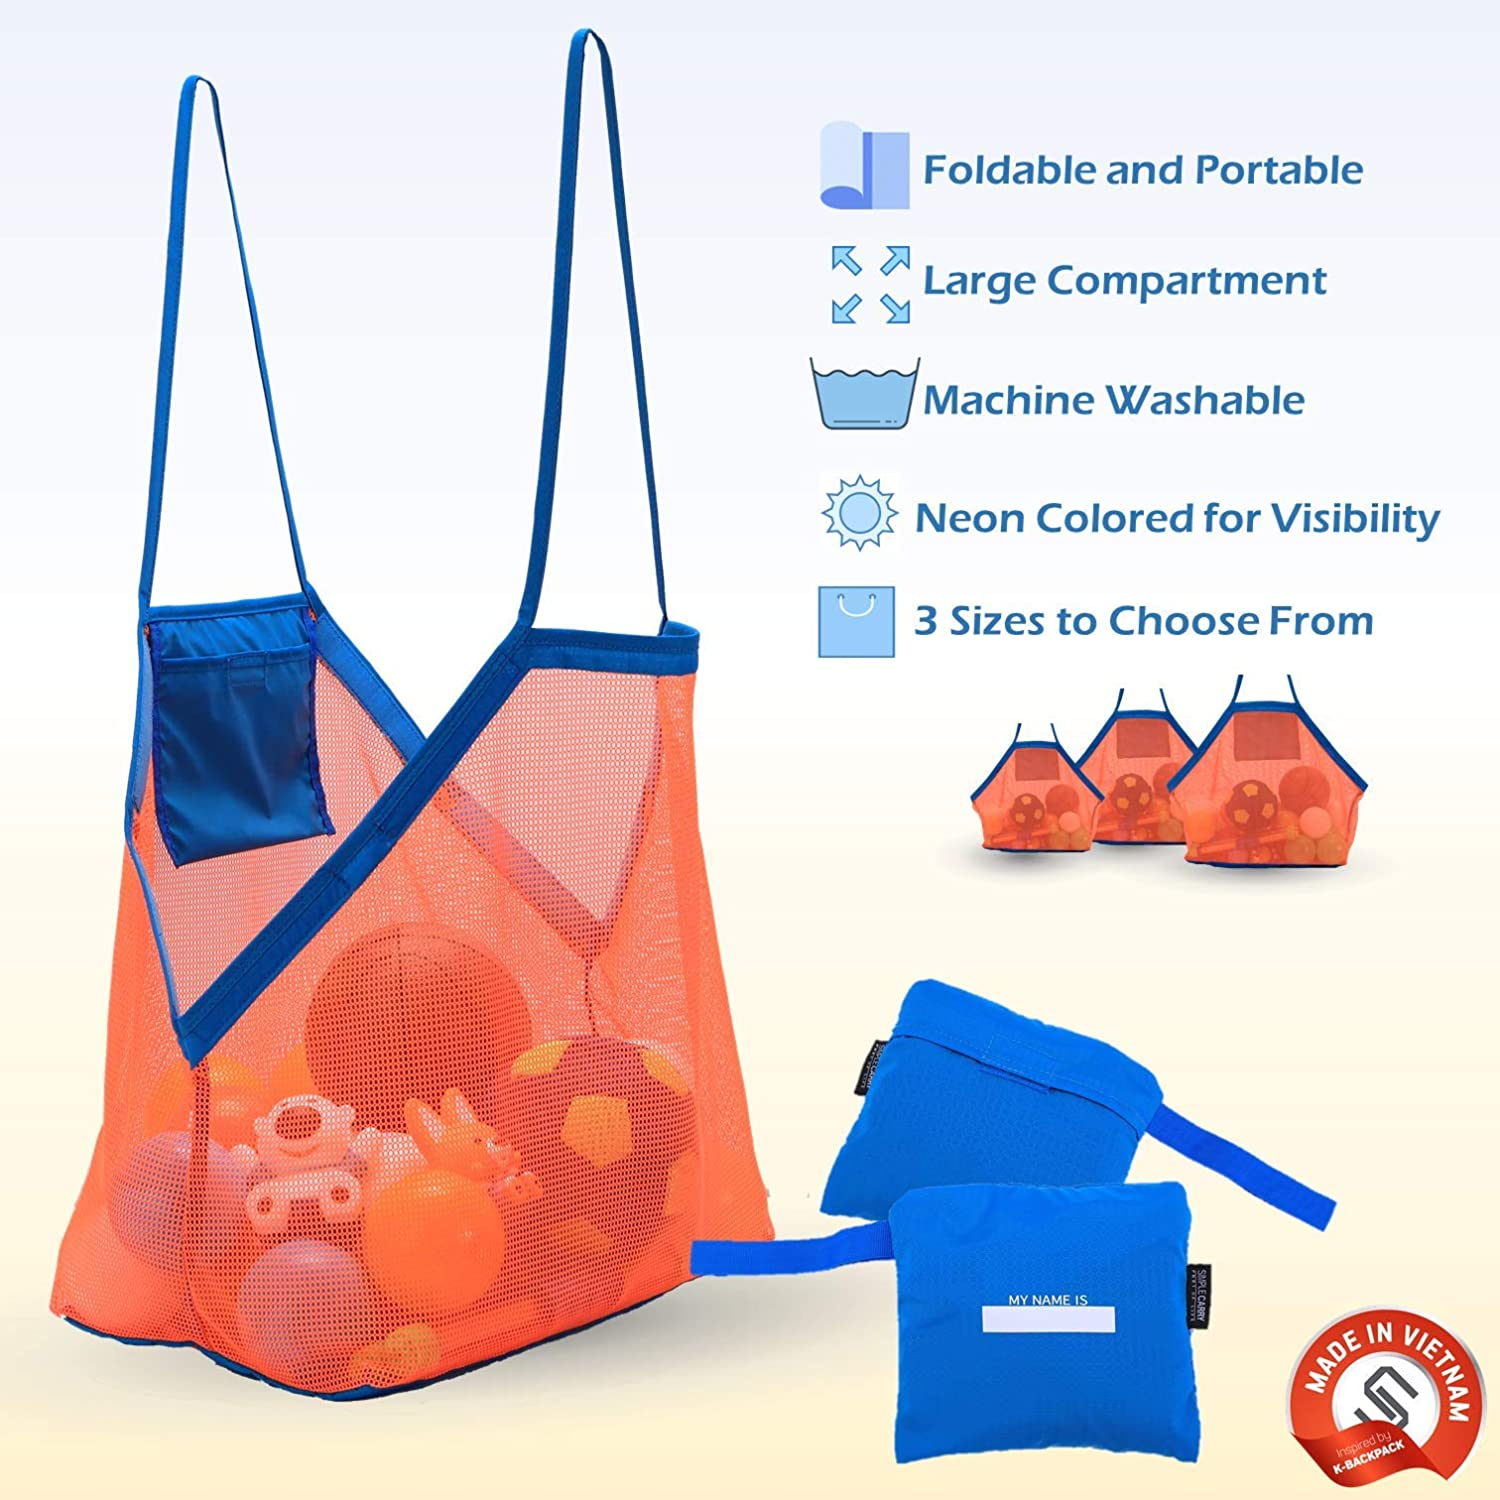 Sea Shells Bag Grocery or Picnic Tote Towels Small Foldable and Lightweight for Kids Beach and Pool Toys SIMPLECARRY Mesh Beach Tote Bag Large